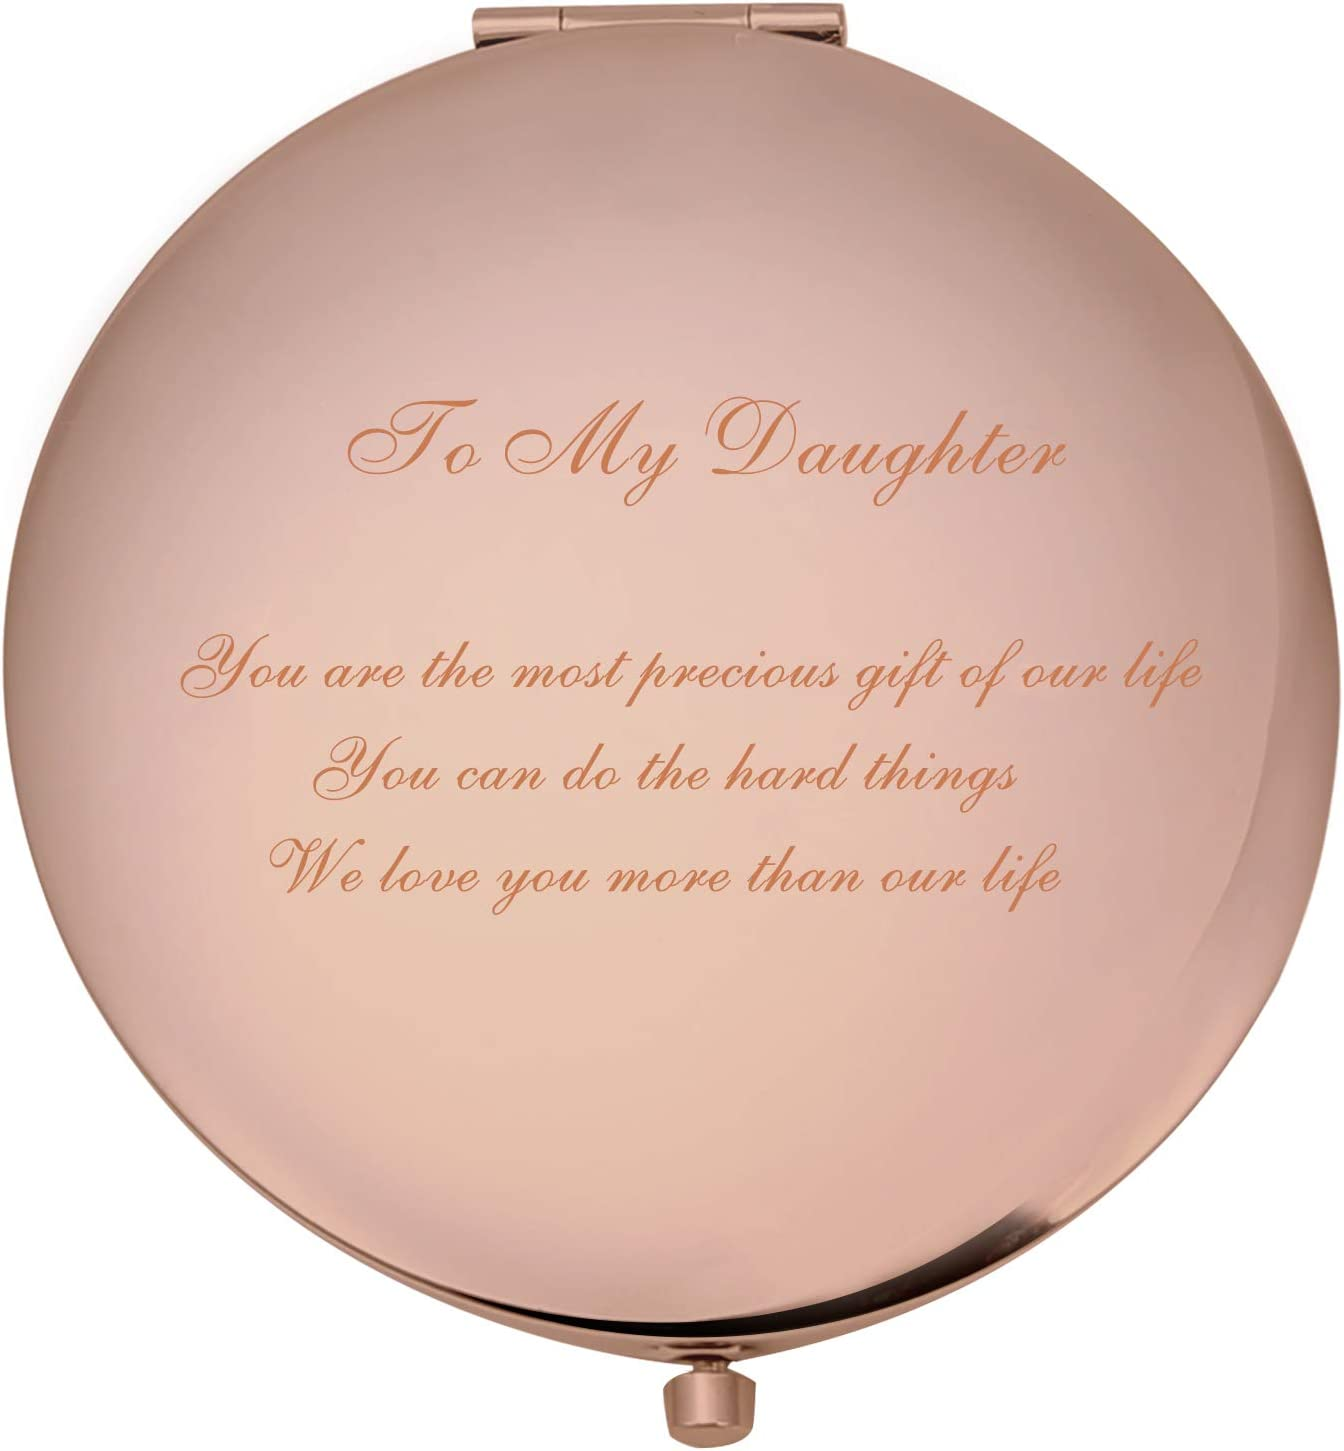 Compact Makeup Mirror to My Daughter Personalized Daughter Gifts from Mom and Dad for Birthday or Some Festivals, Rose Gold